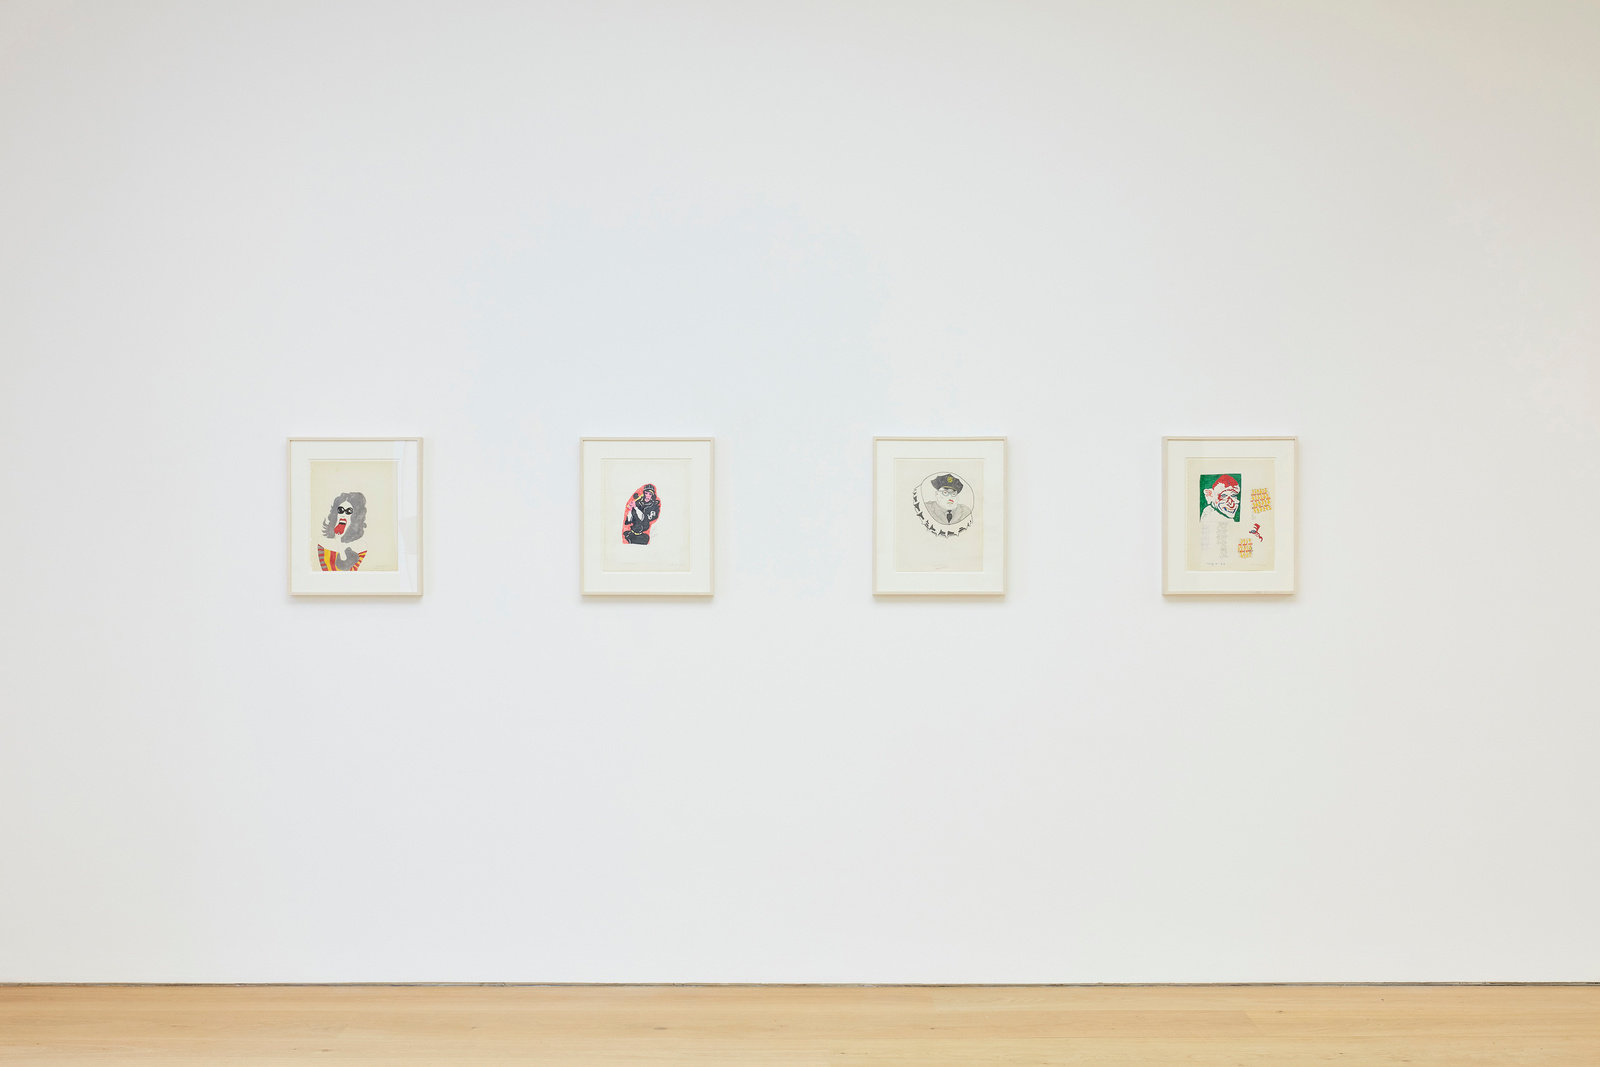 An installation view of four Karl Wirsum framed works on paper hanging on a wall horizontally.